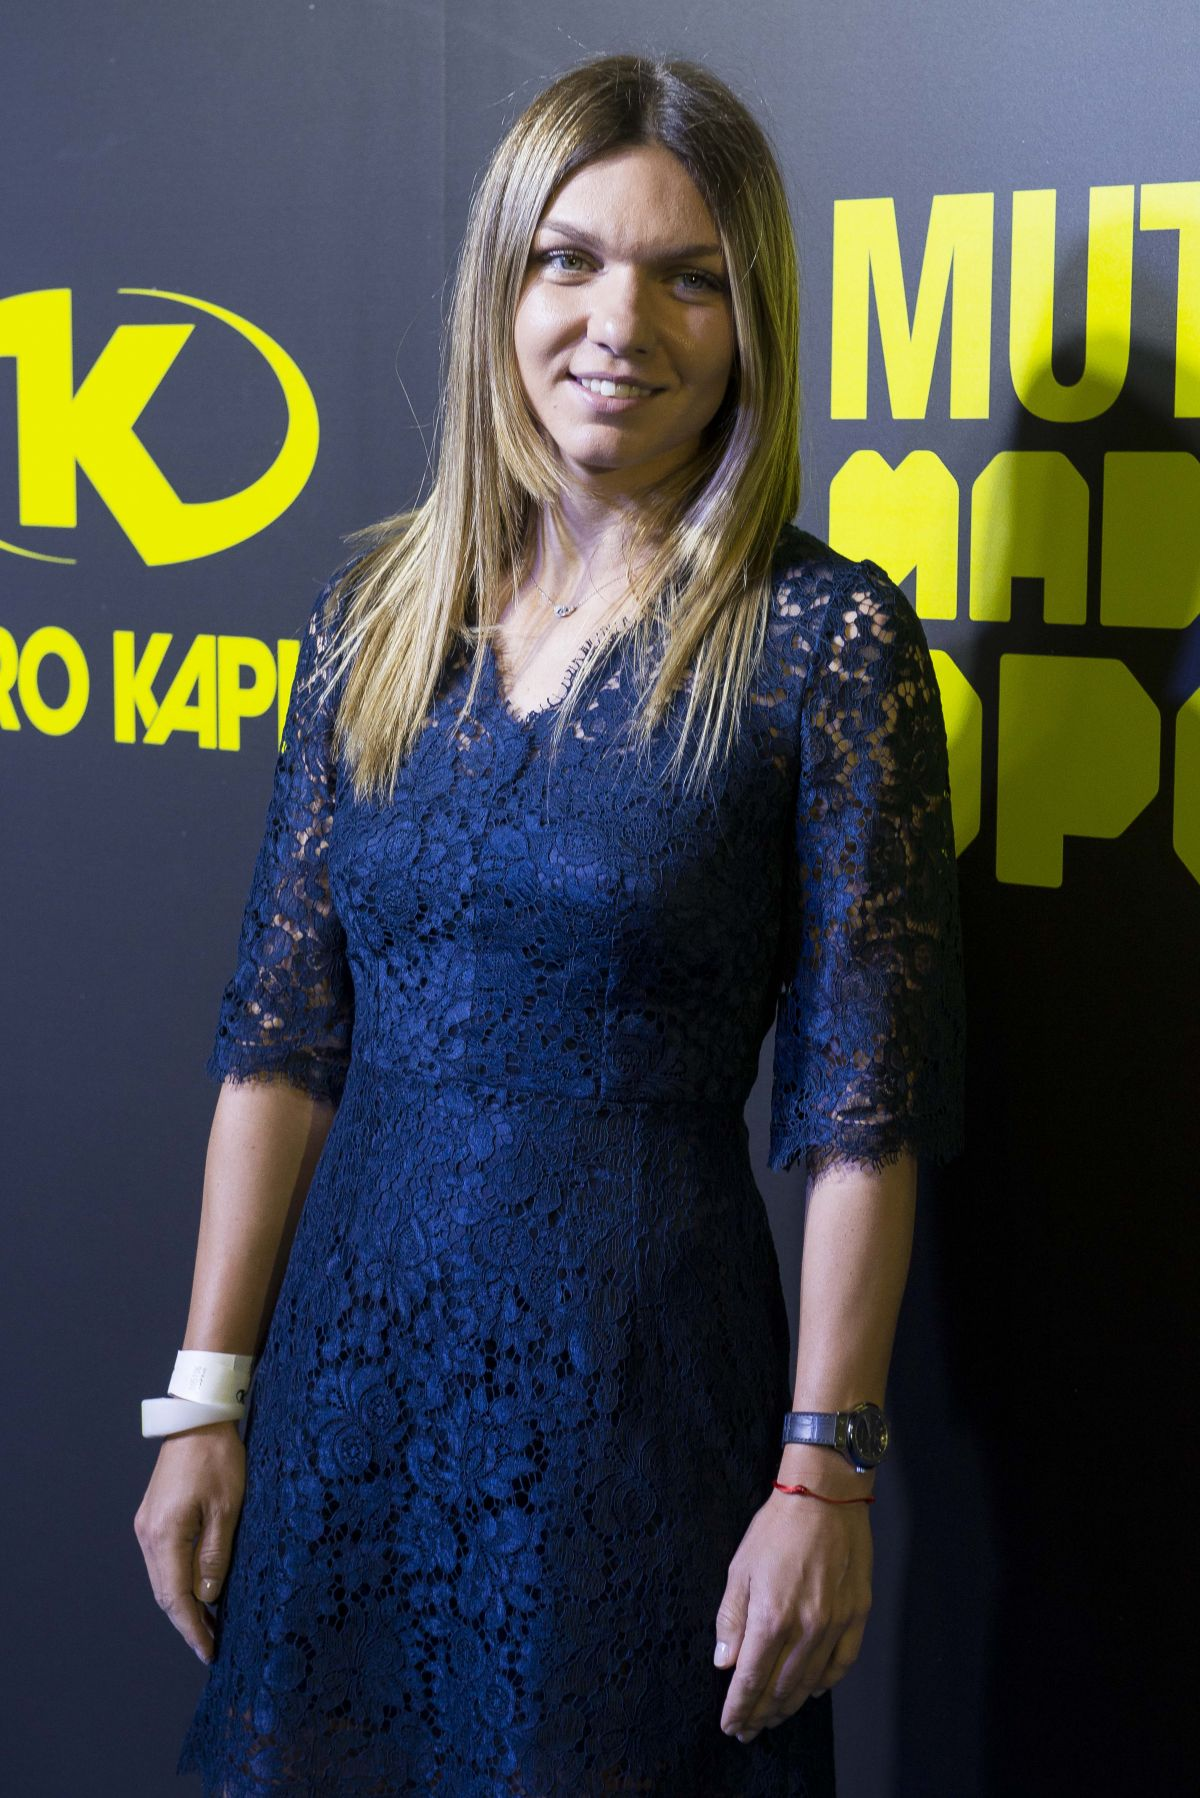 SIMONA HALEP at Mutua Madrid Open Party in Madrid 05/05/2017